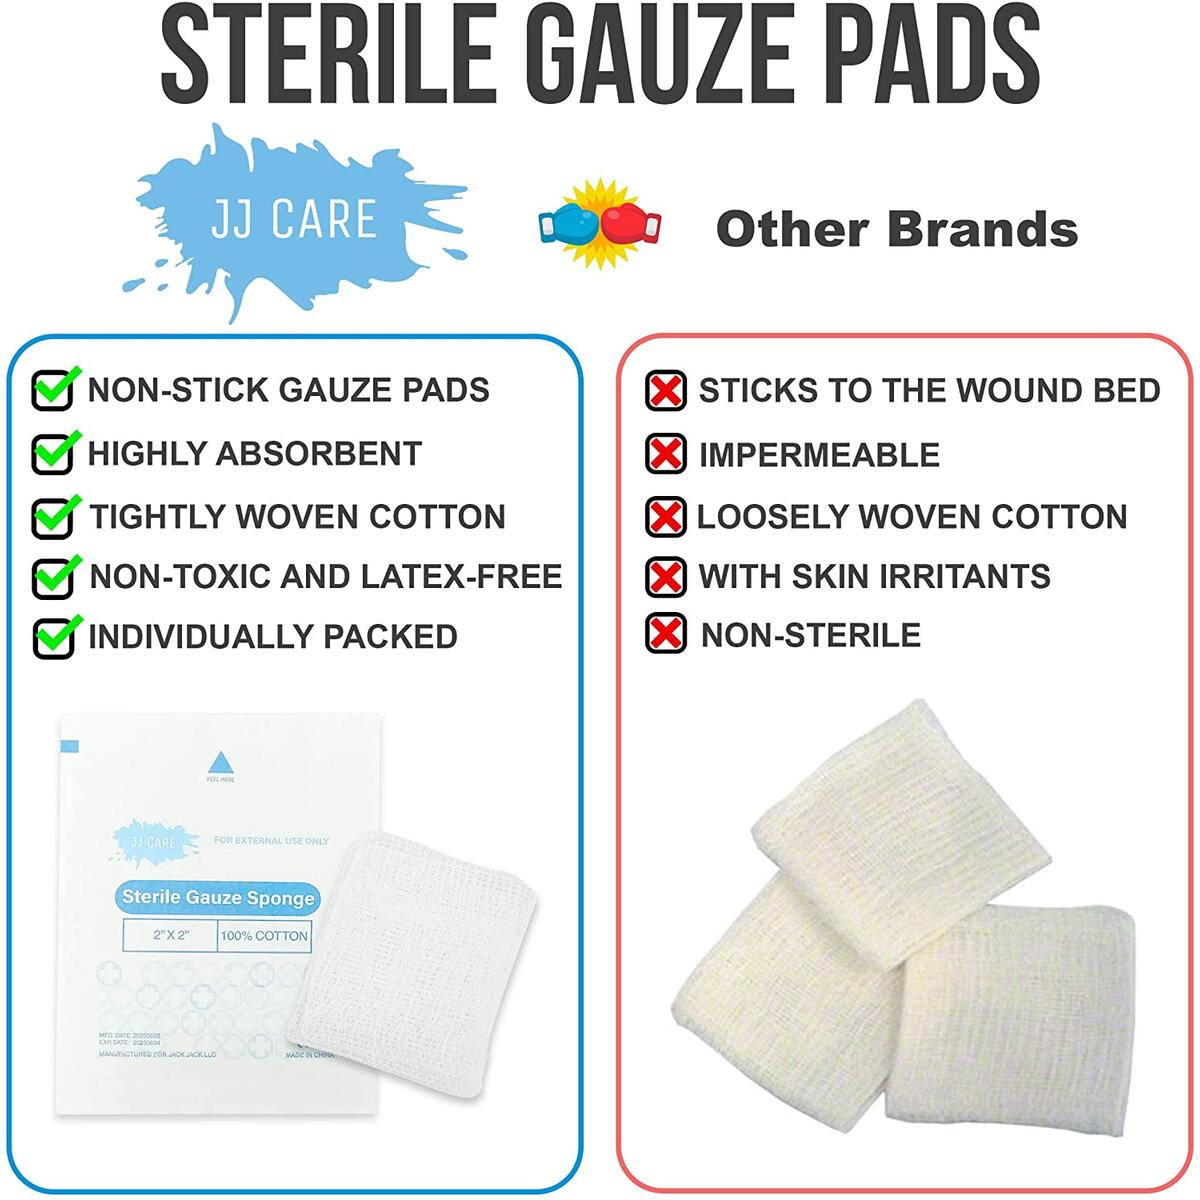 [Box of 100] 2x2 Sterile Gauze Pads 12-Ply Cotton Gauze Pads, 100% Woven Medical Gauze Pads, Individually-Wrapped Sterile Gauze Sponges, Non-Stick Gauze Pads for First Aid Kit and Wound Care